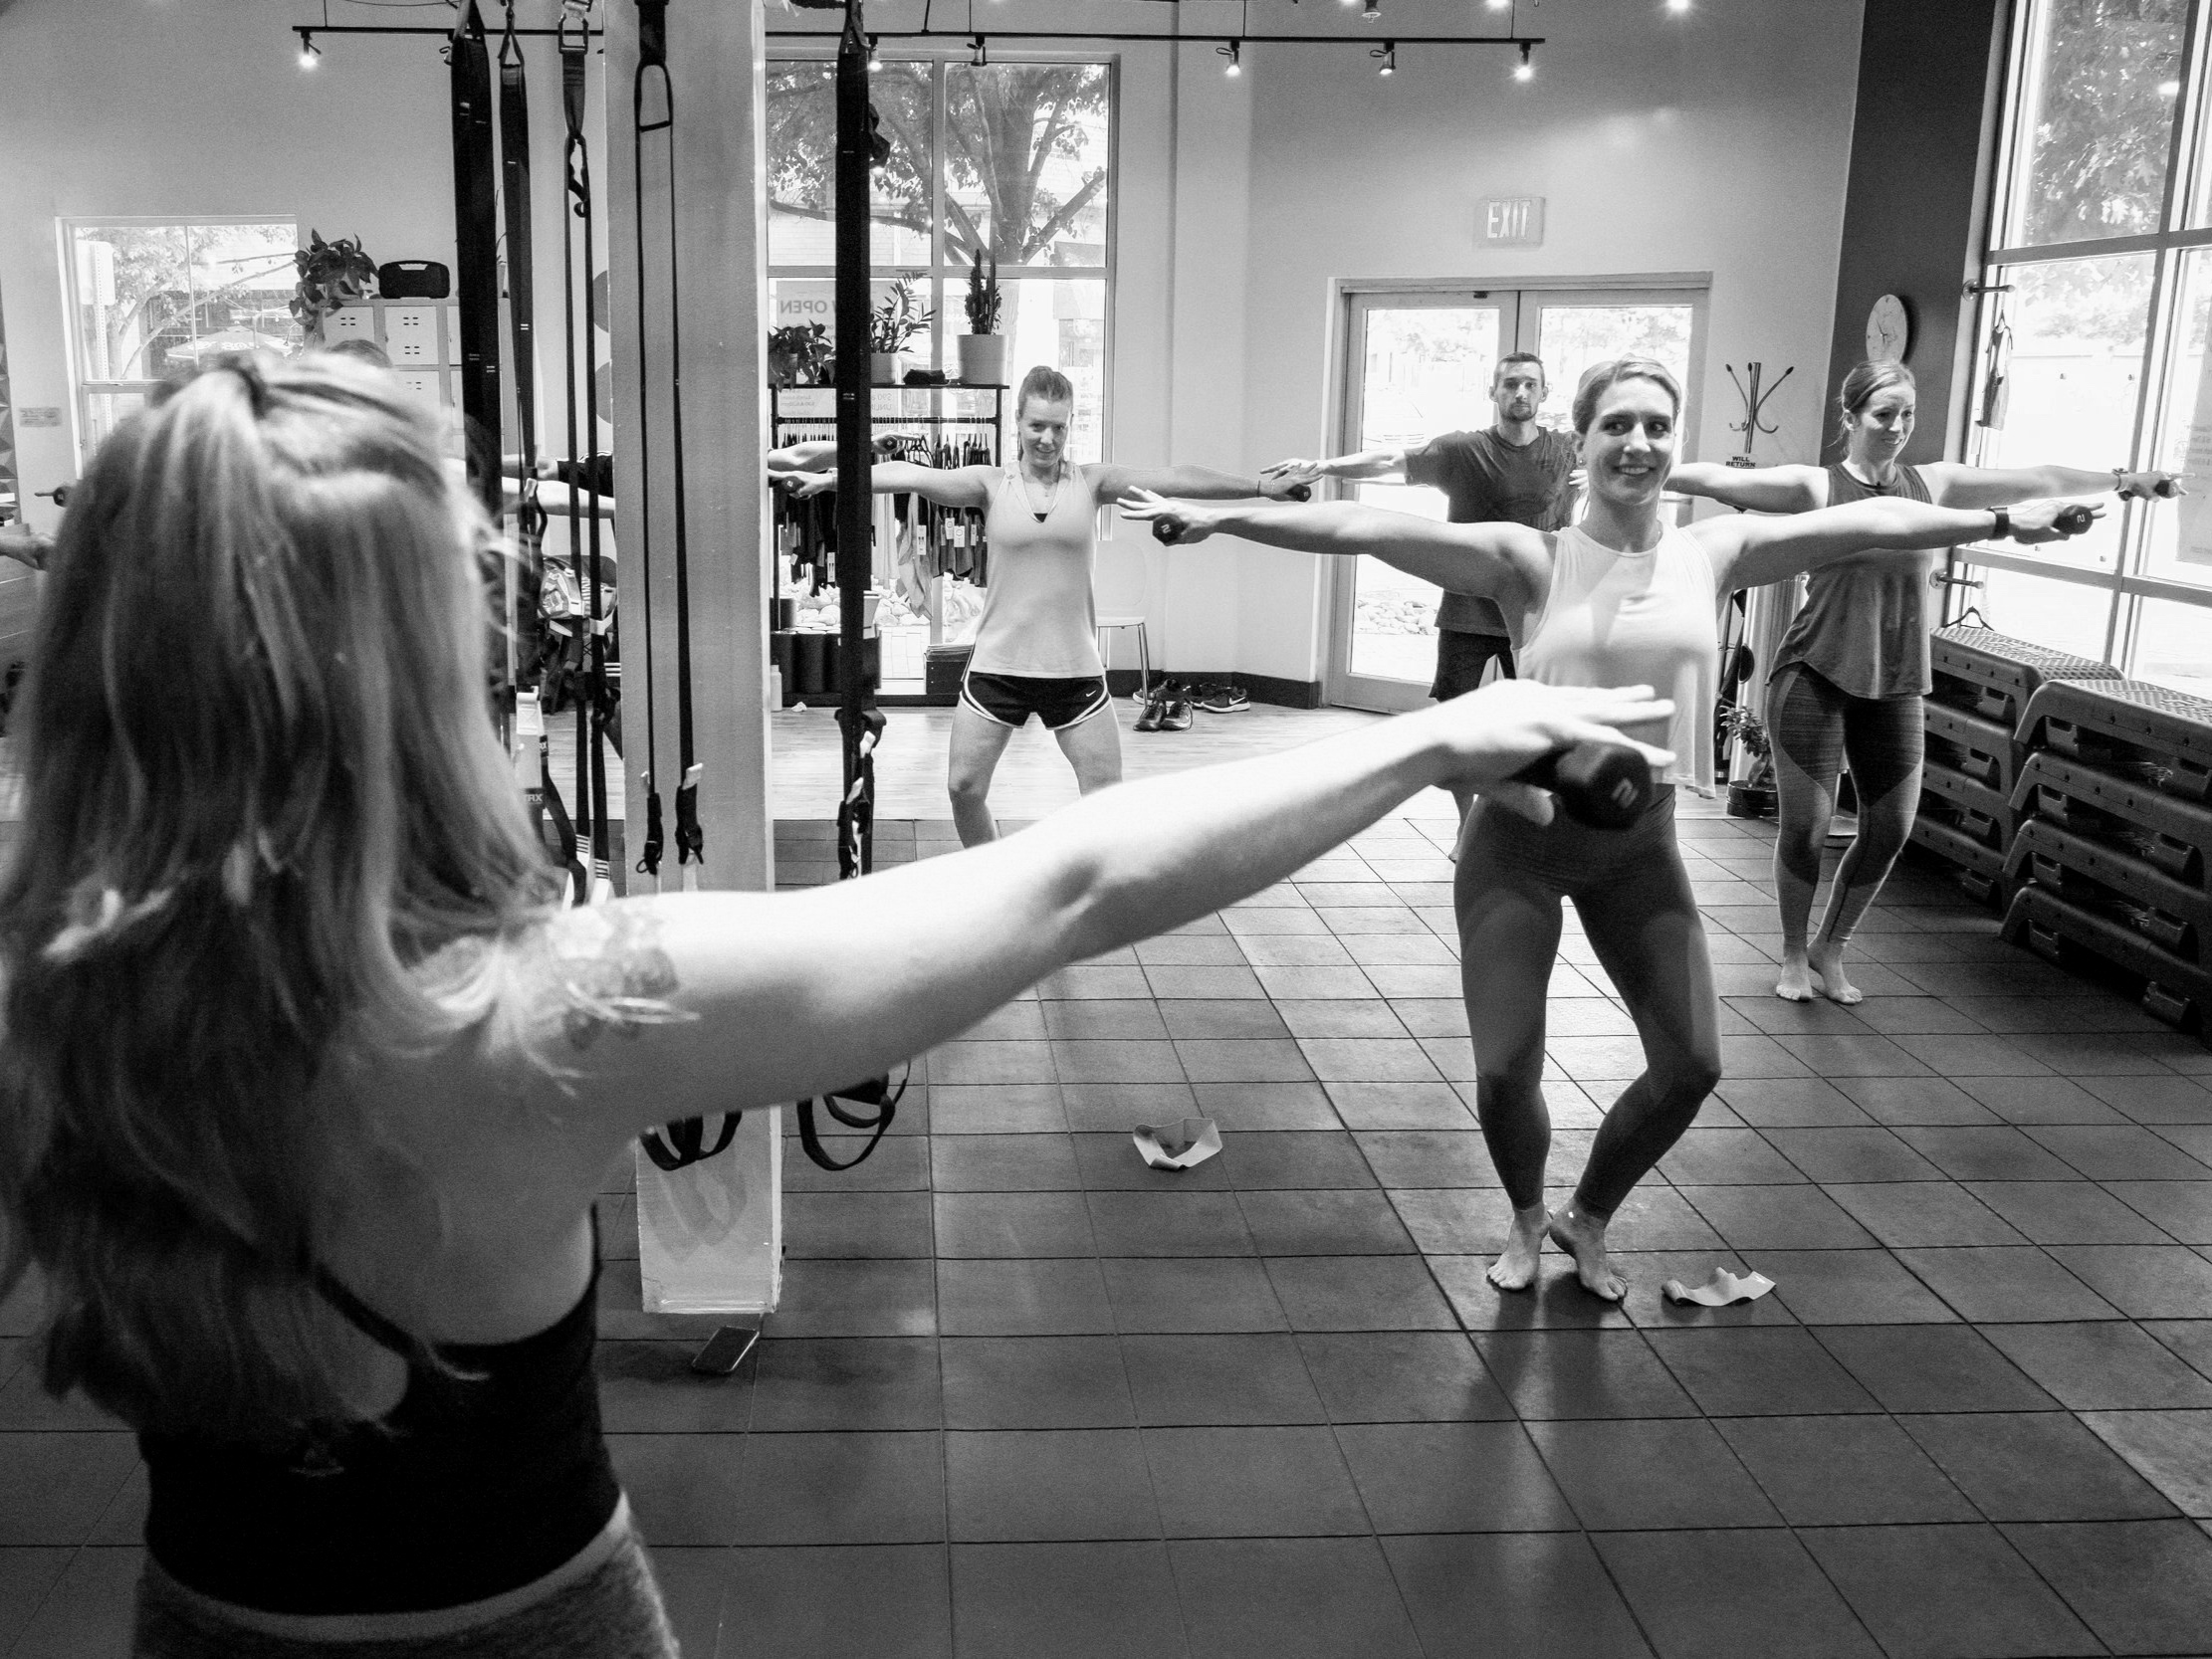 Barre - Barre is low weight super high rep to burn out your endurance muscles, it's great low impact training to help you get toned, and also a great method to help you train for things like marathons/races, or even weight lifting as your endurance muscle fibers will kick in to help push you farther.